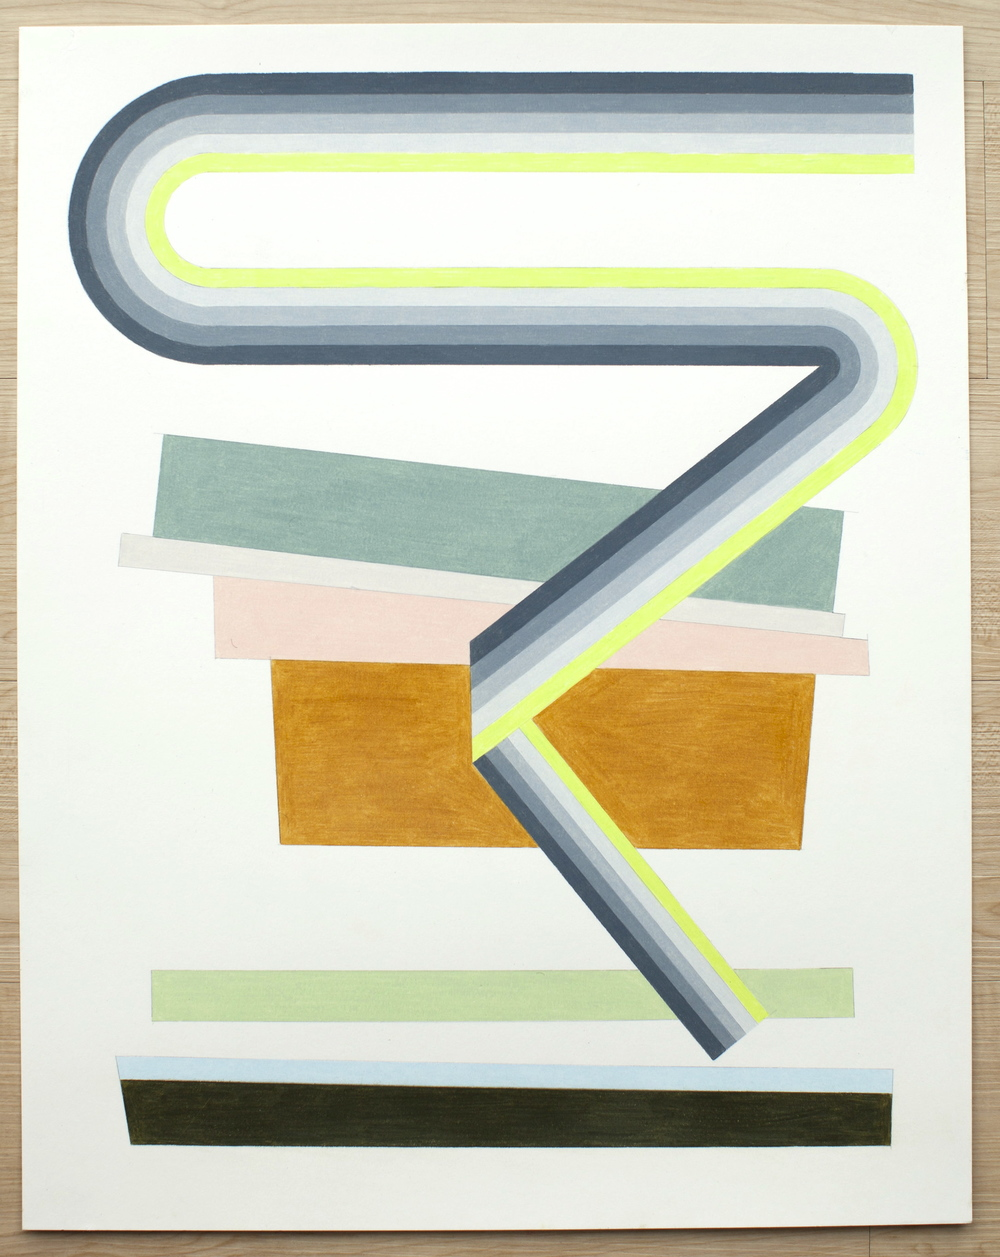 Untitled (Transition with Neon Gradation), 2015, colored pencil on paper, 24 x 19 inches